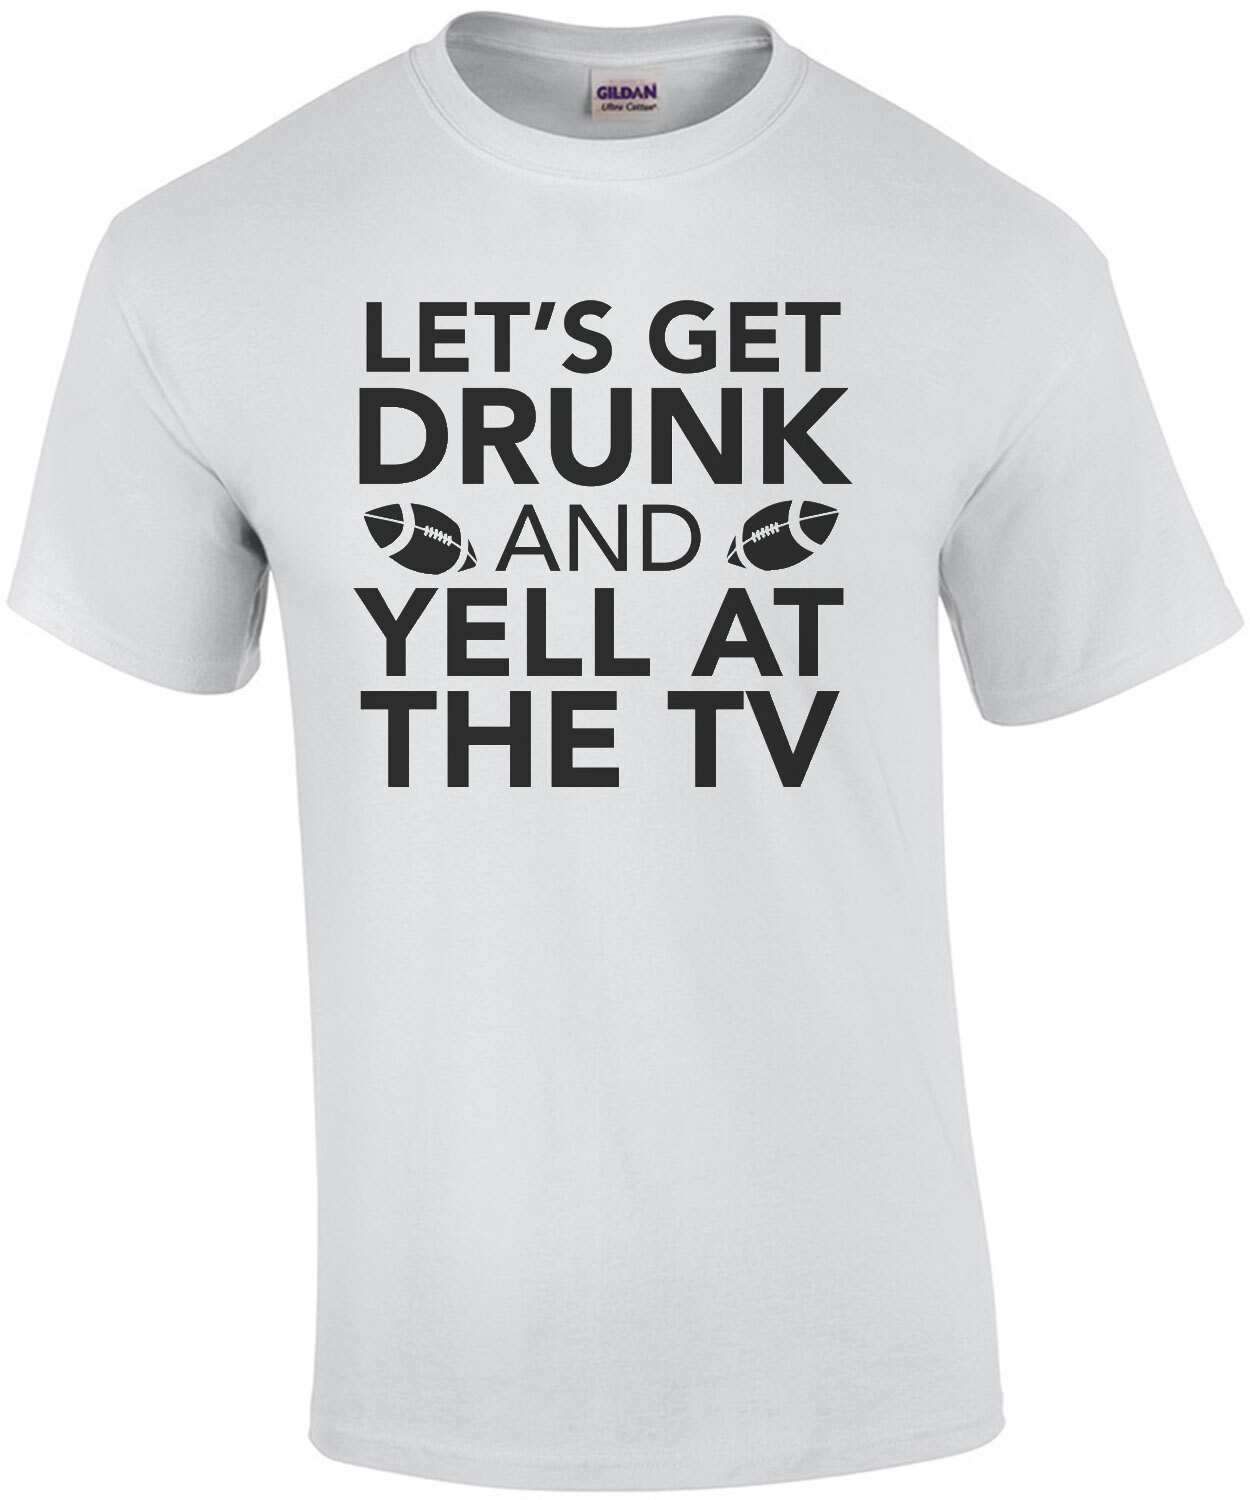 Let's get drunk and yell at the TV - funny sports t-shirt